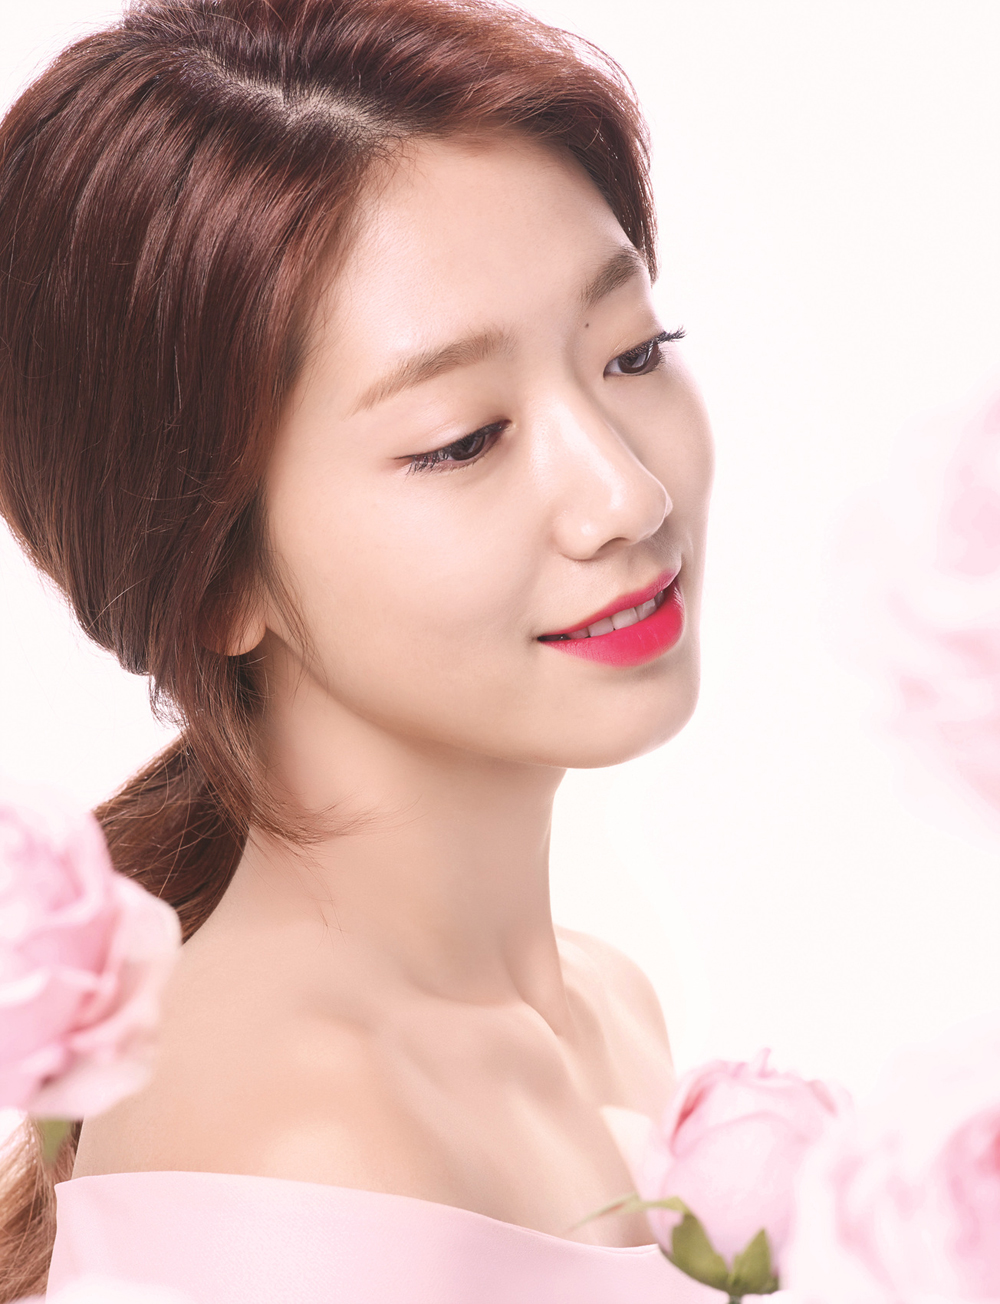 Radiant Park Shin Hye For Mamonde True Color Lipstick Ads